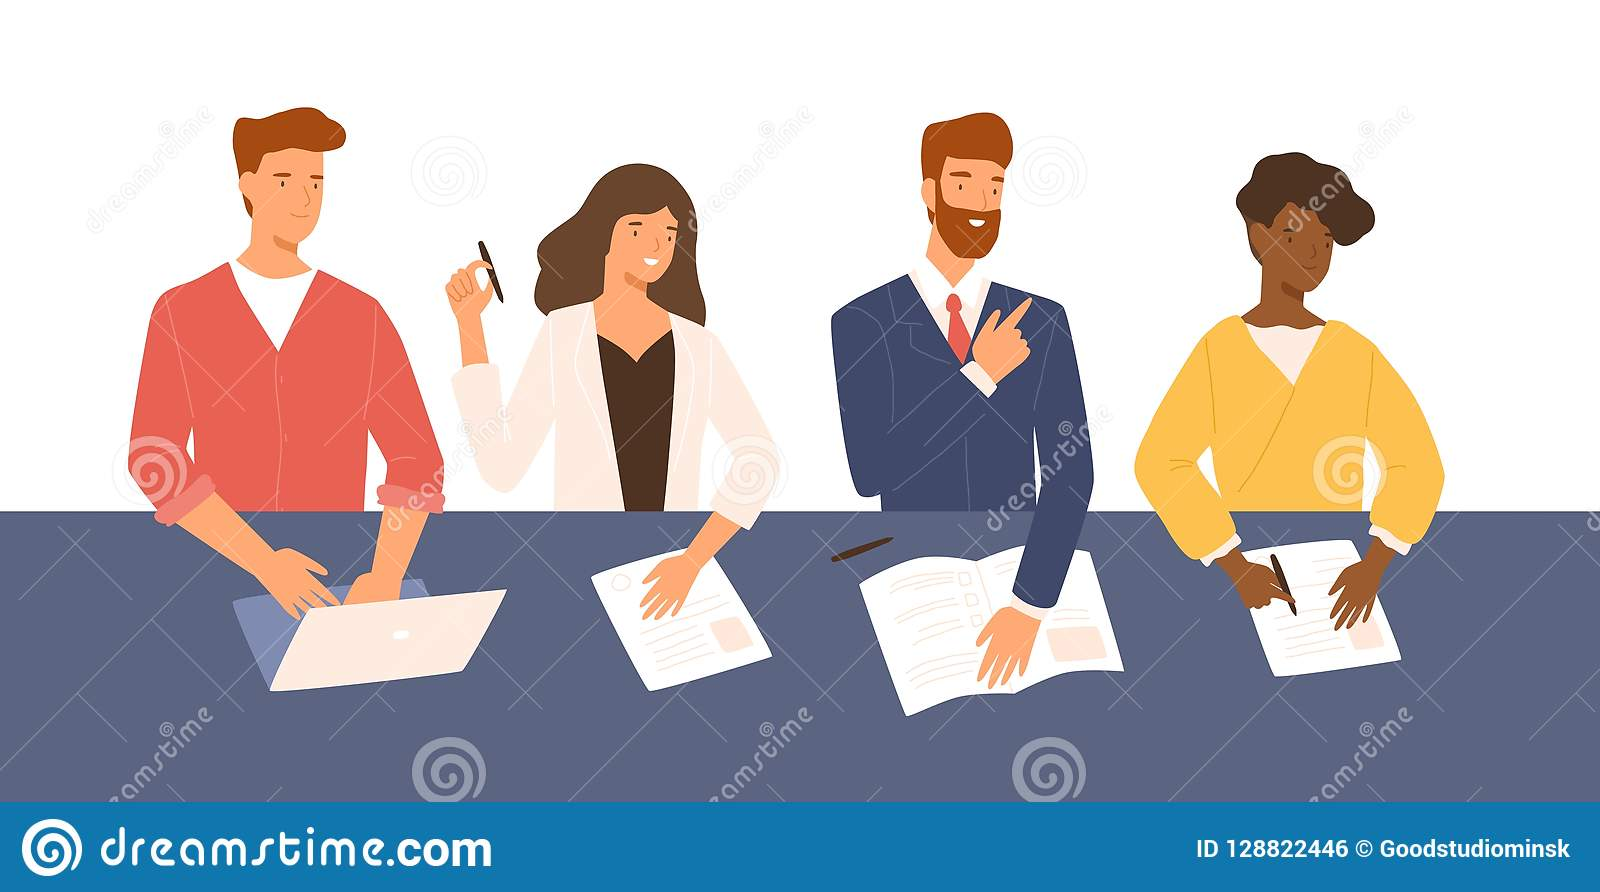 Friendly men and women sitting at table, holding CV and asking questions during job interview. Smiling HR, hiring or